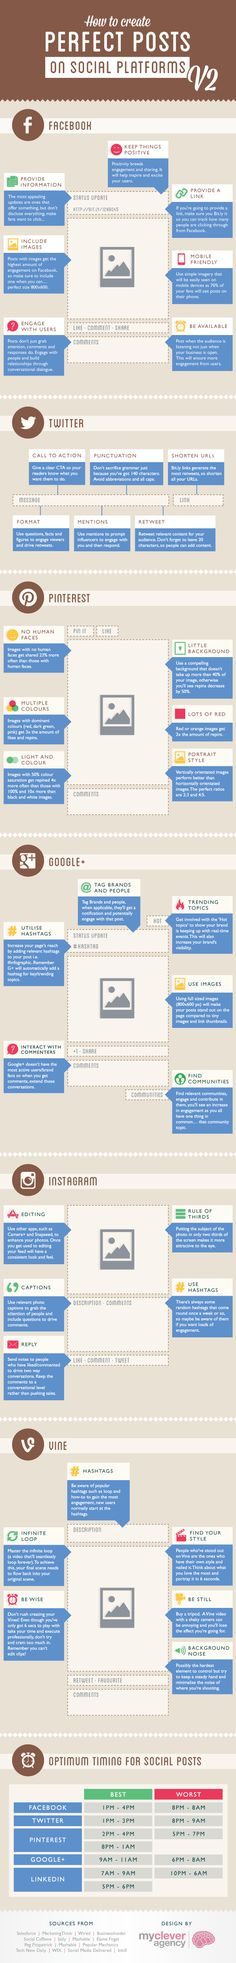 How To Create Perfect Vine, Instagram, Pinterest, Google+, Facebook & Twitter Posts- Version 2 [Infographic]